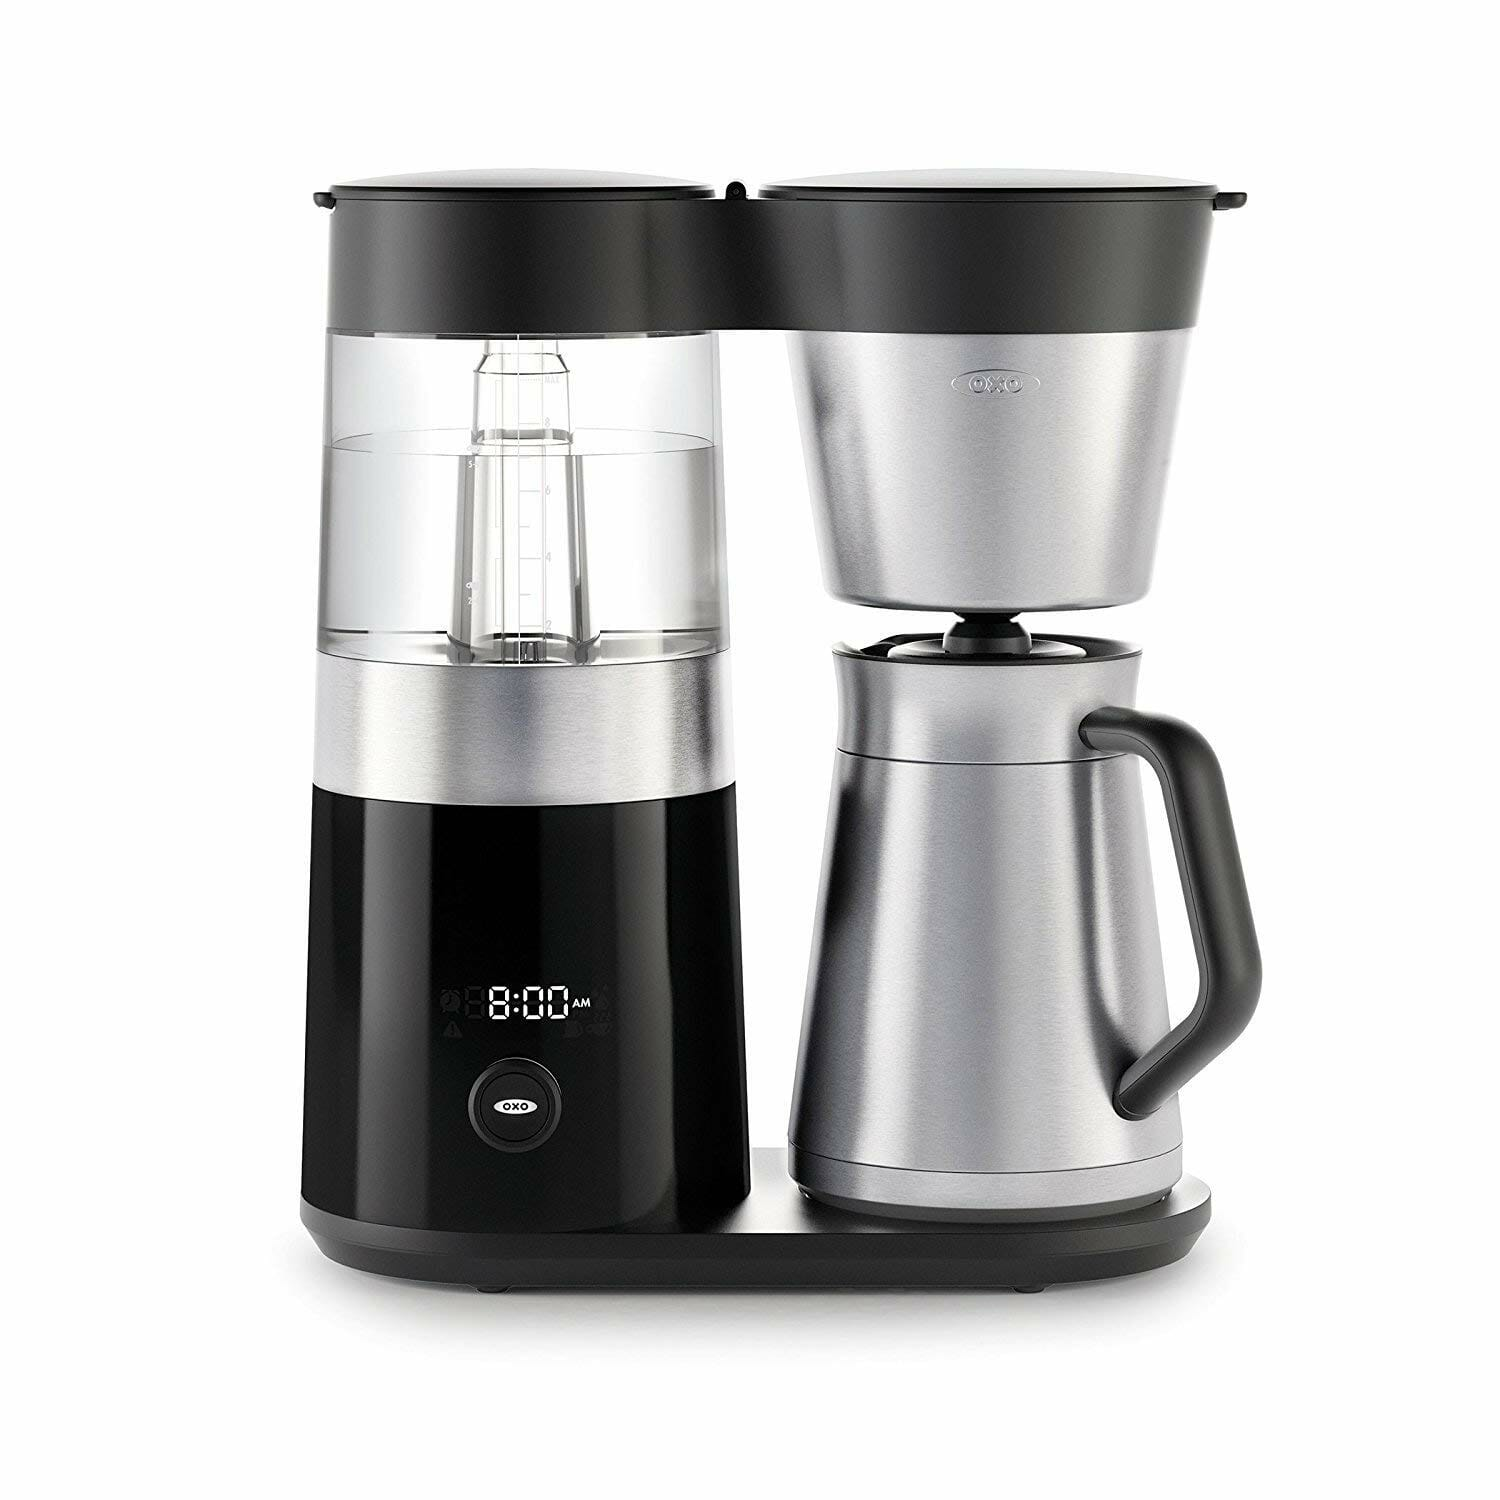 Oxo drip machine with filter basket for 9 cup